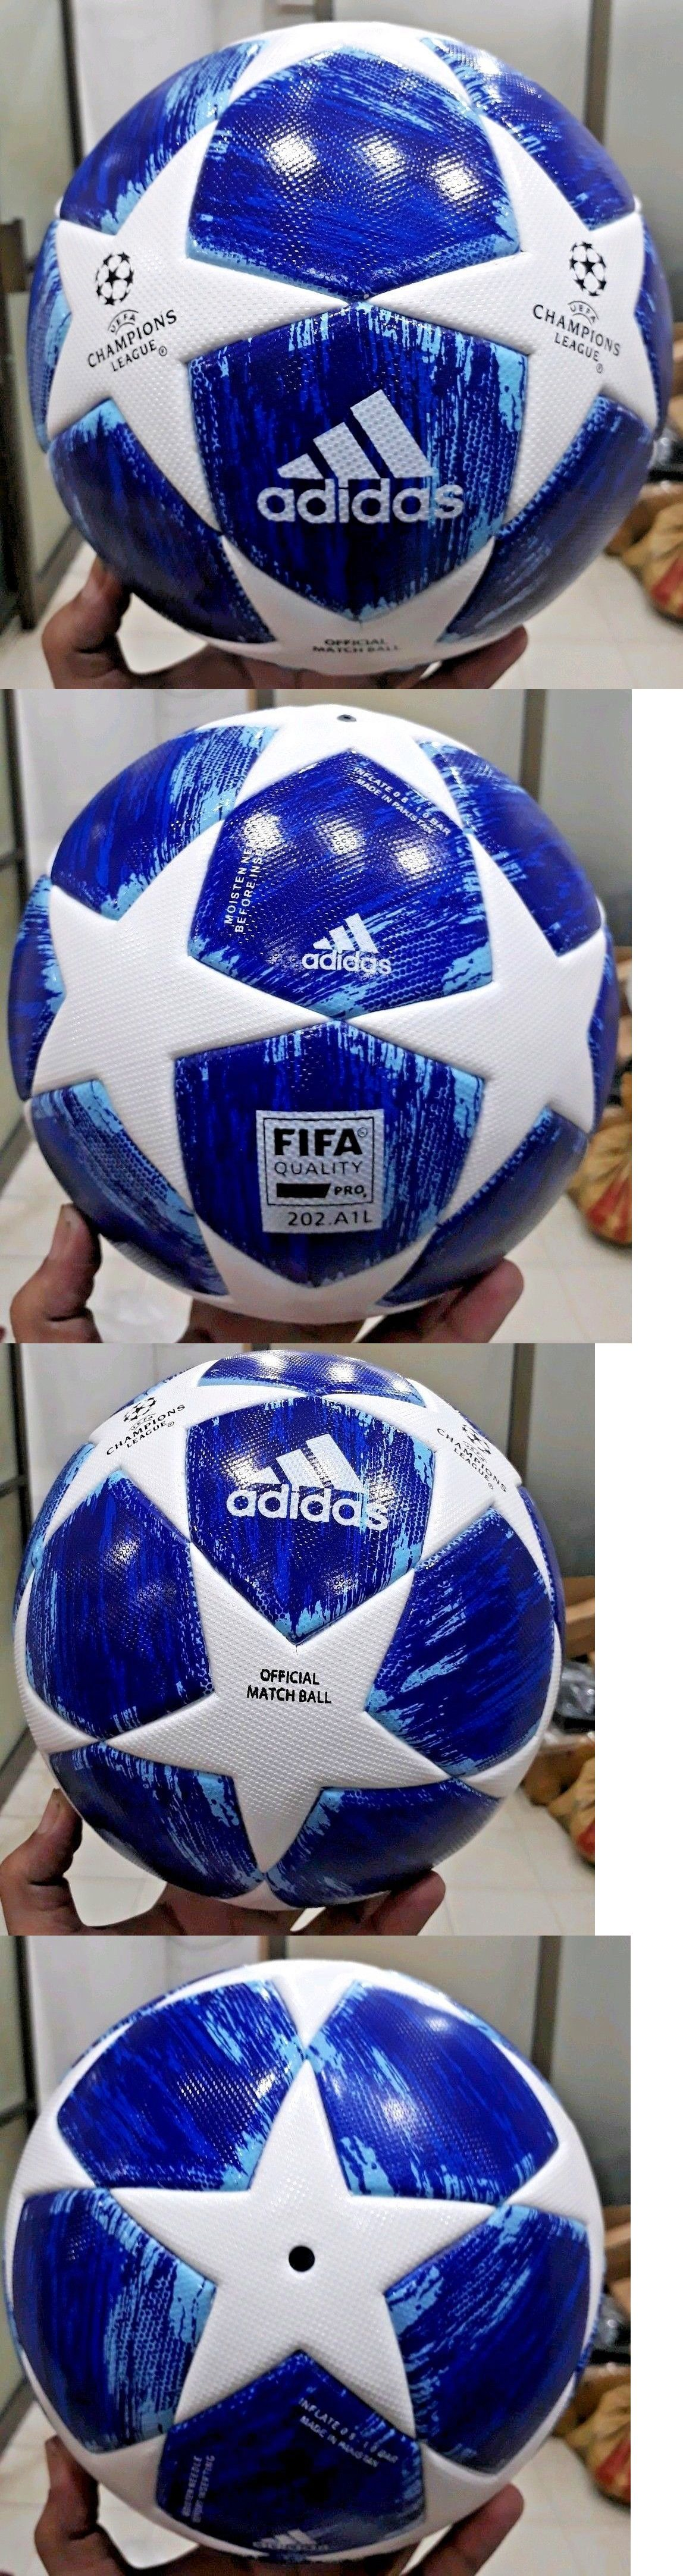 c6174f2524e Balls 20863  New Adidas Uefa Champions League - Official Soccer Match Ball  2019 Size 5 -  BUY IT NOW ONLY   49.99 on  eBay  balls  adidas  champions   league ...